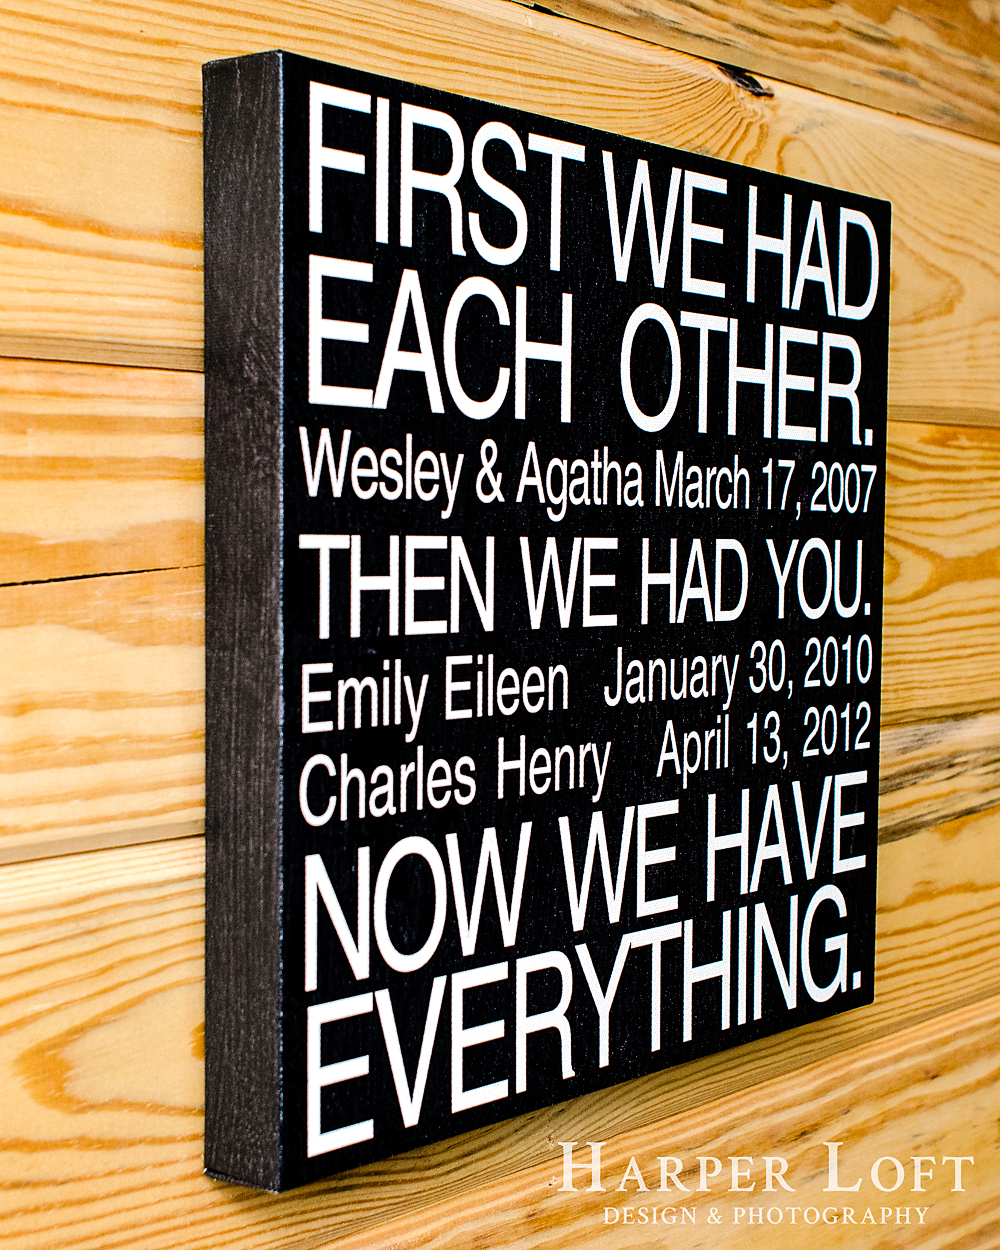 art-print-now-we-have-everything.jpg